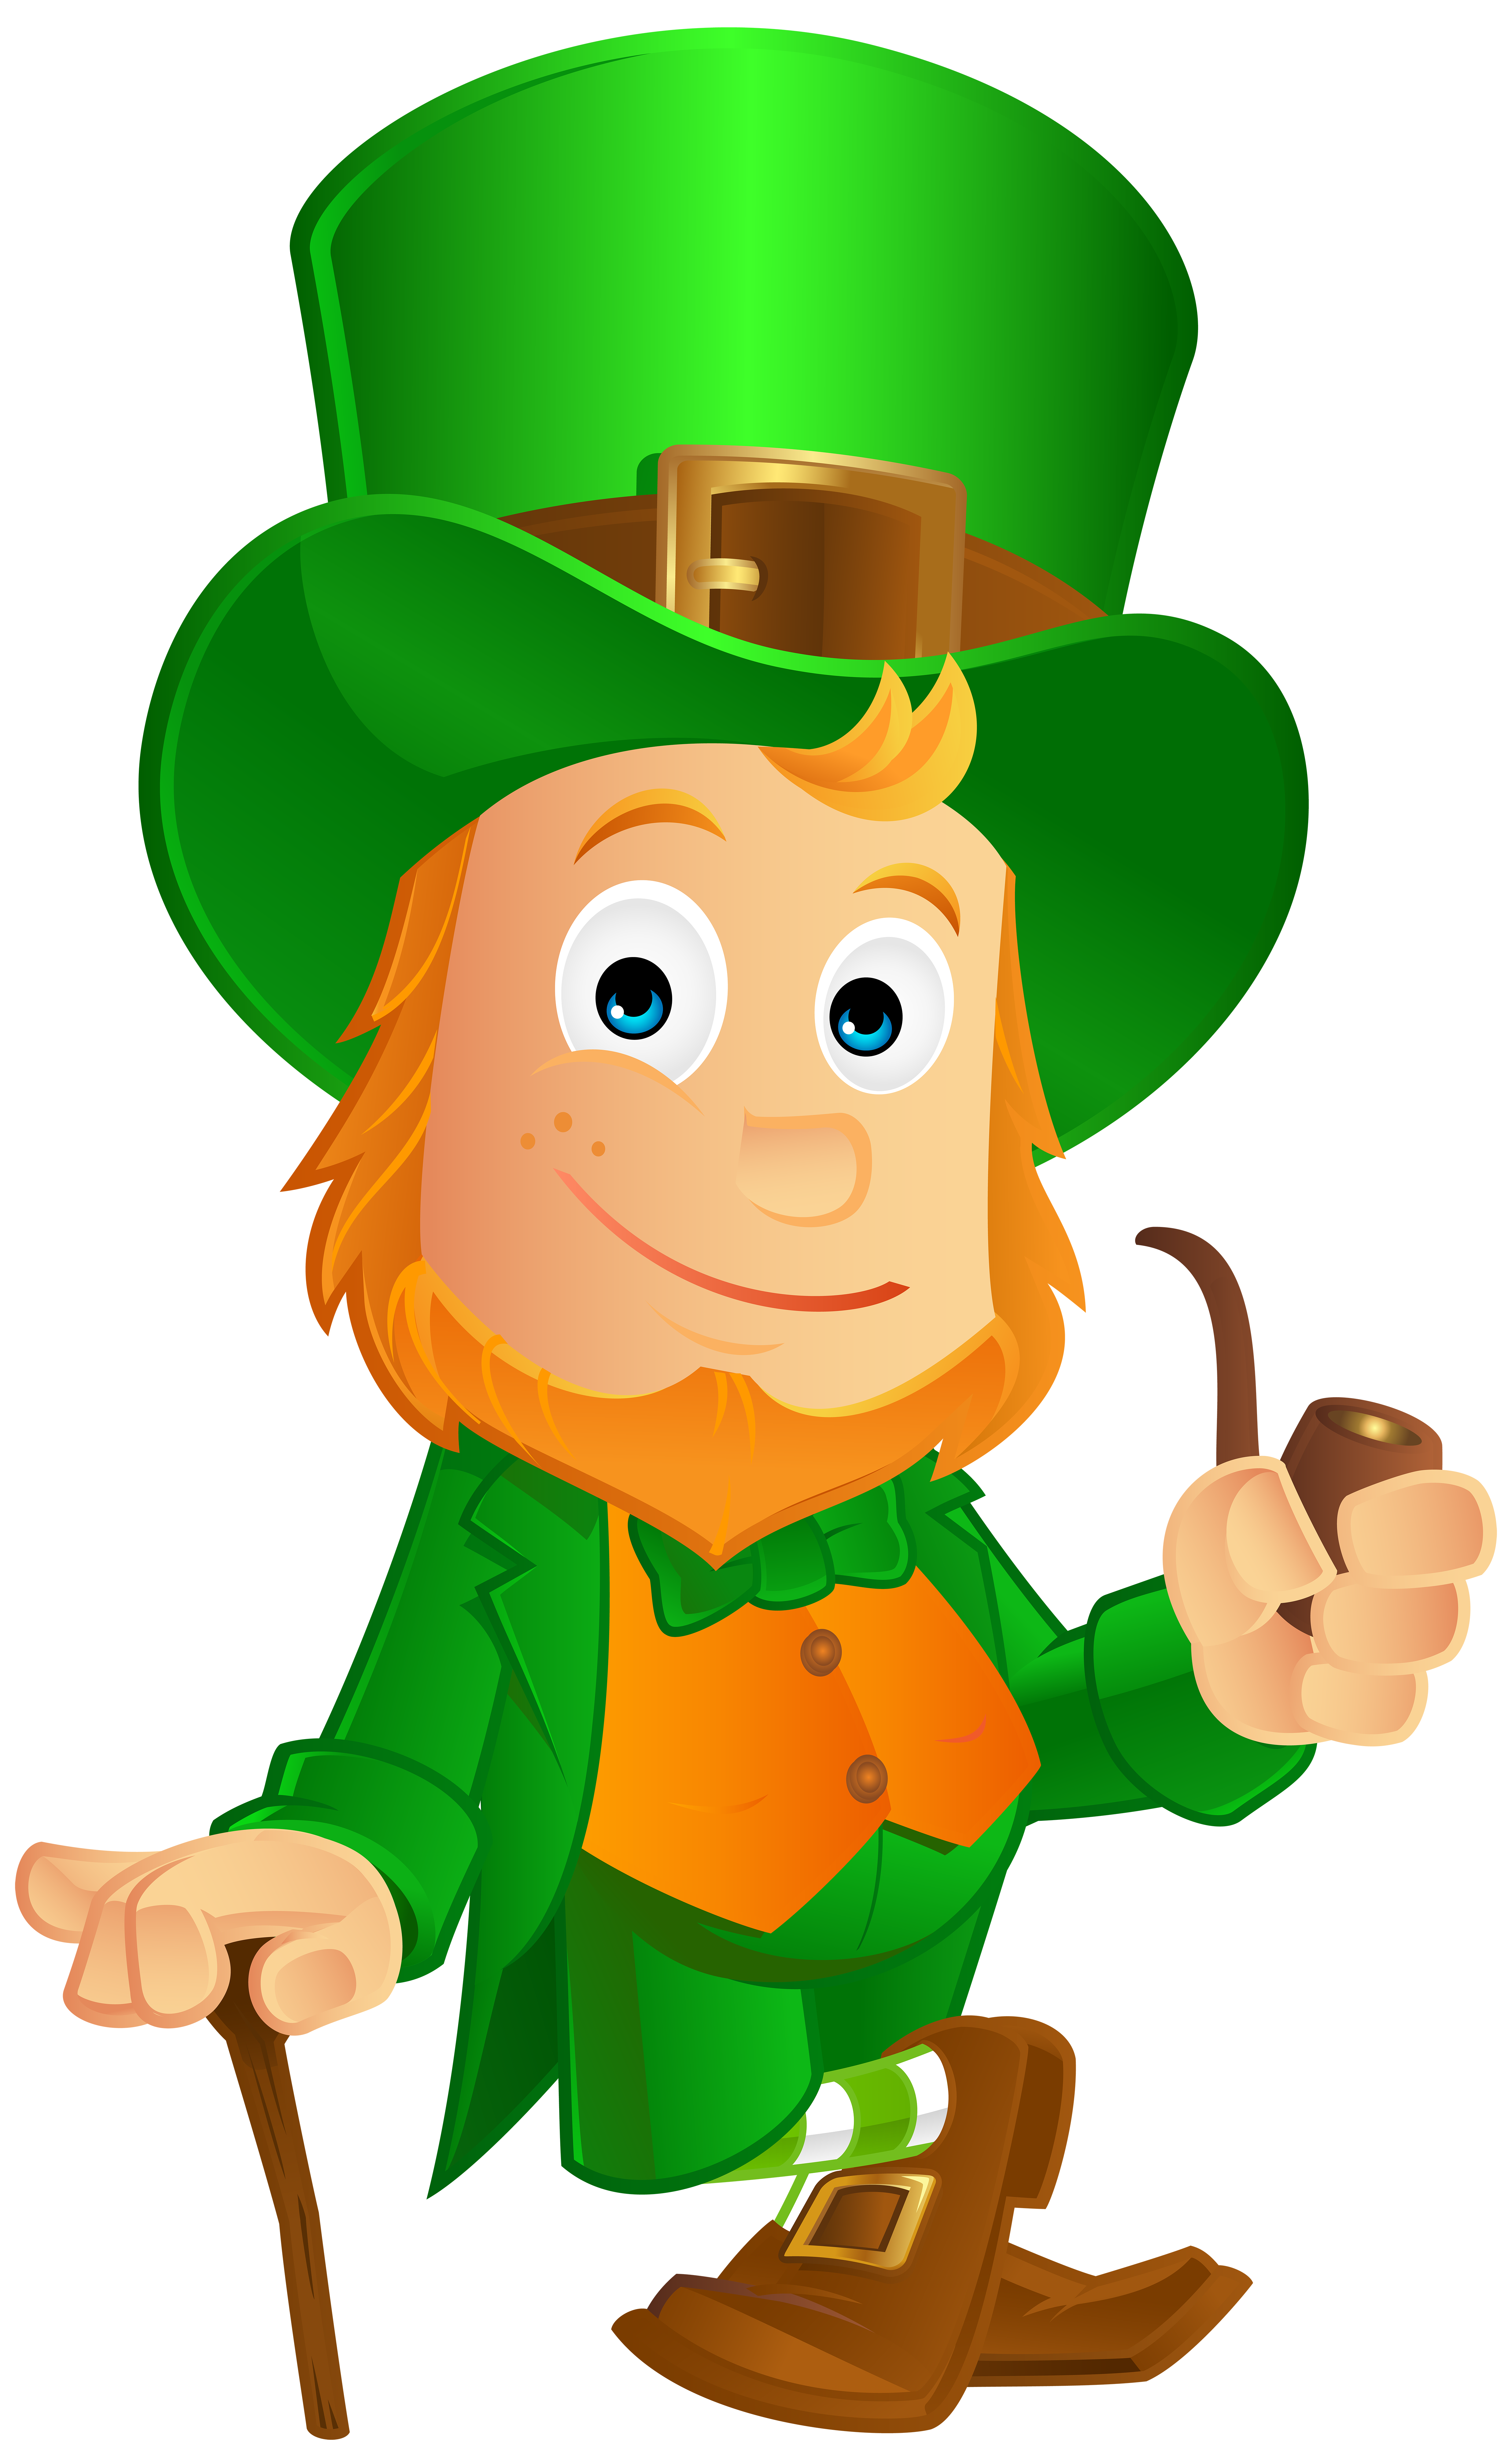 Leprechaun clipart png image library stock St Patrick-s Day Leprechaun Clip Art Image | Gallery Yopriceville ... image library stock